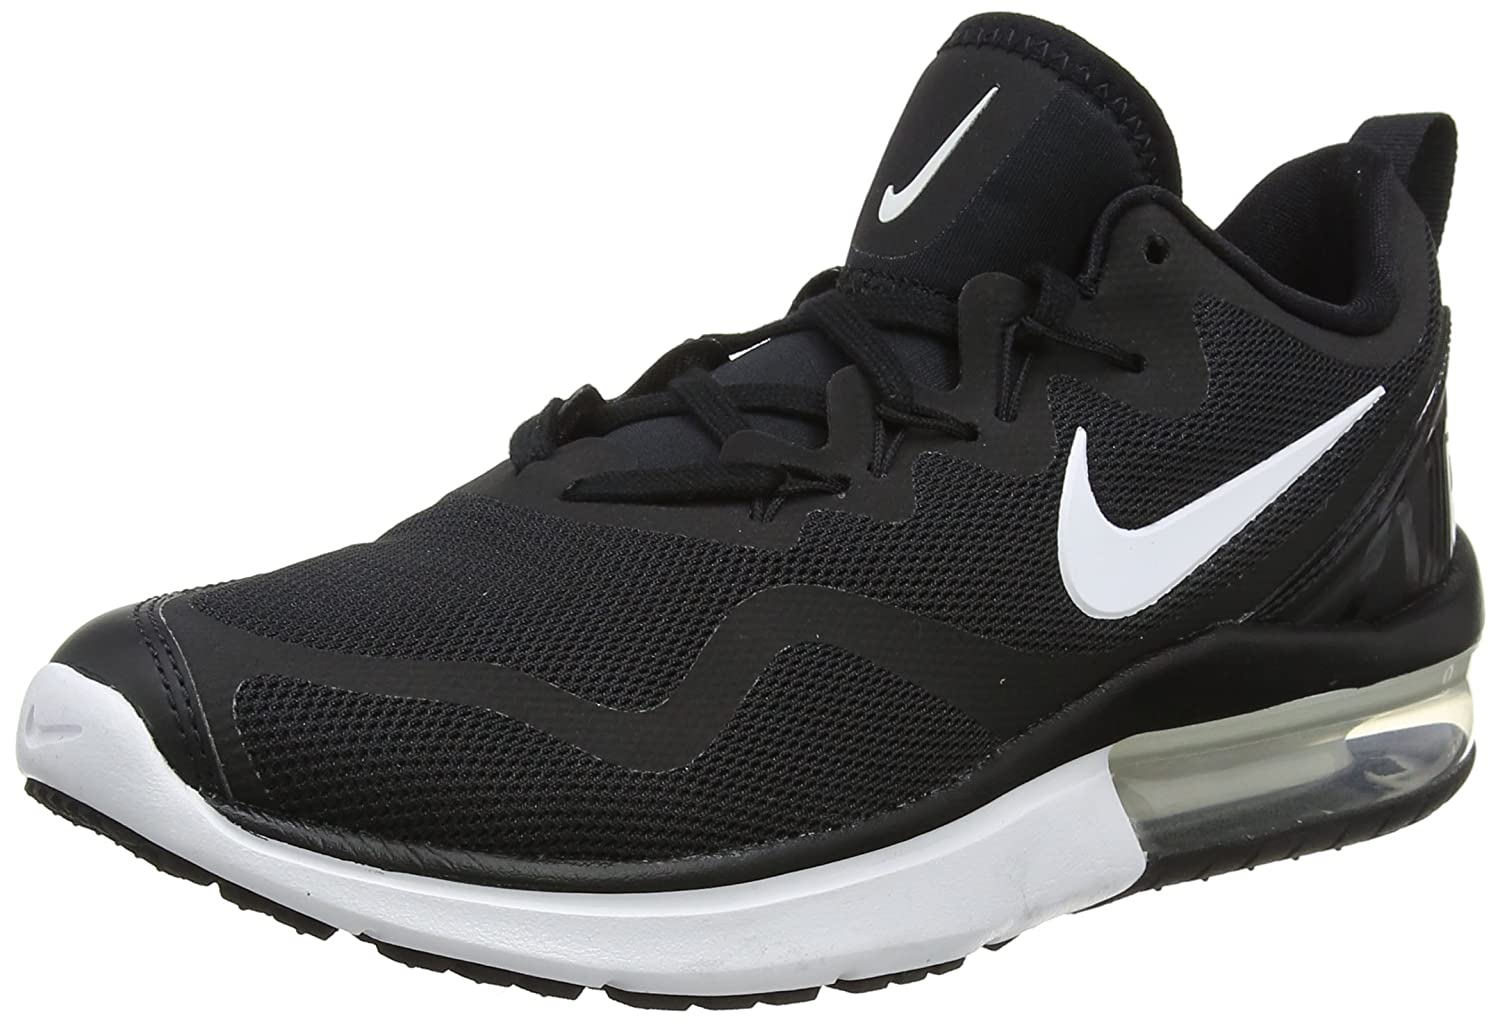 NIKE Men's Air Max Fury Running Shoe B071G23LQR 9.5 D(M) US|Black/White Black